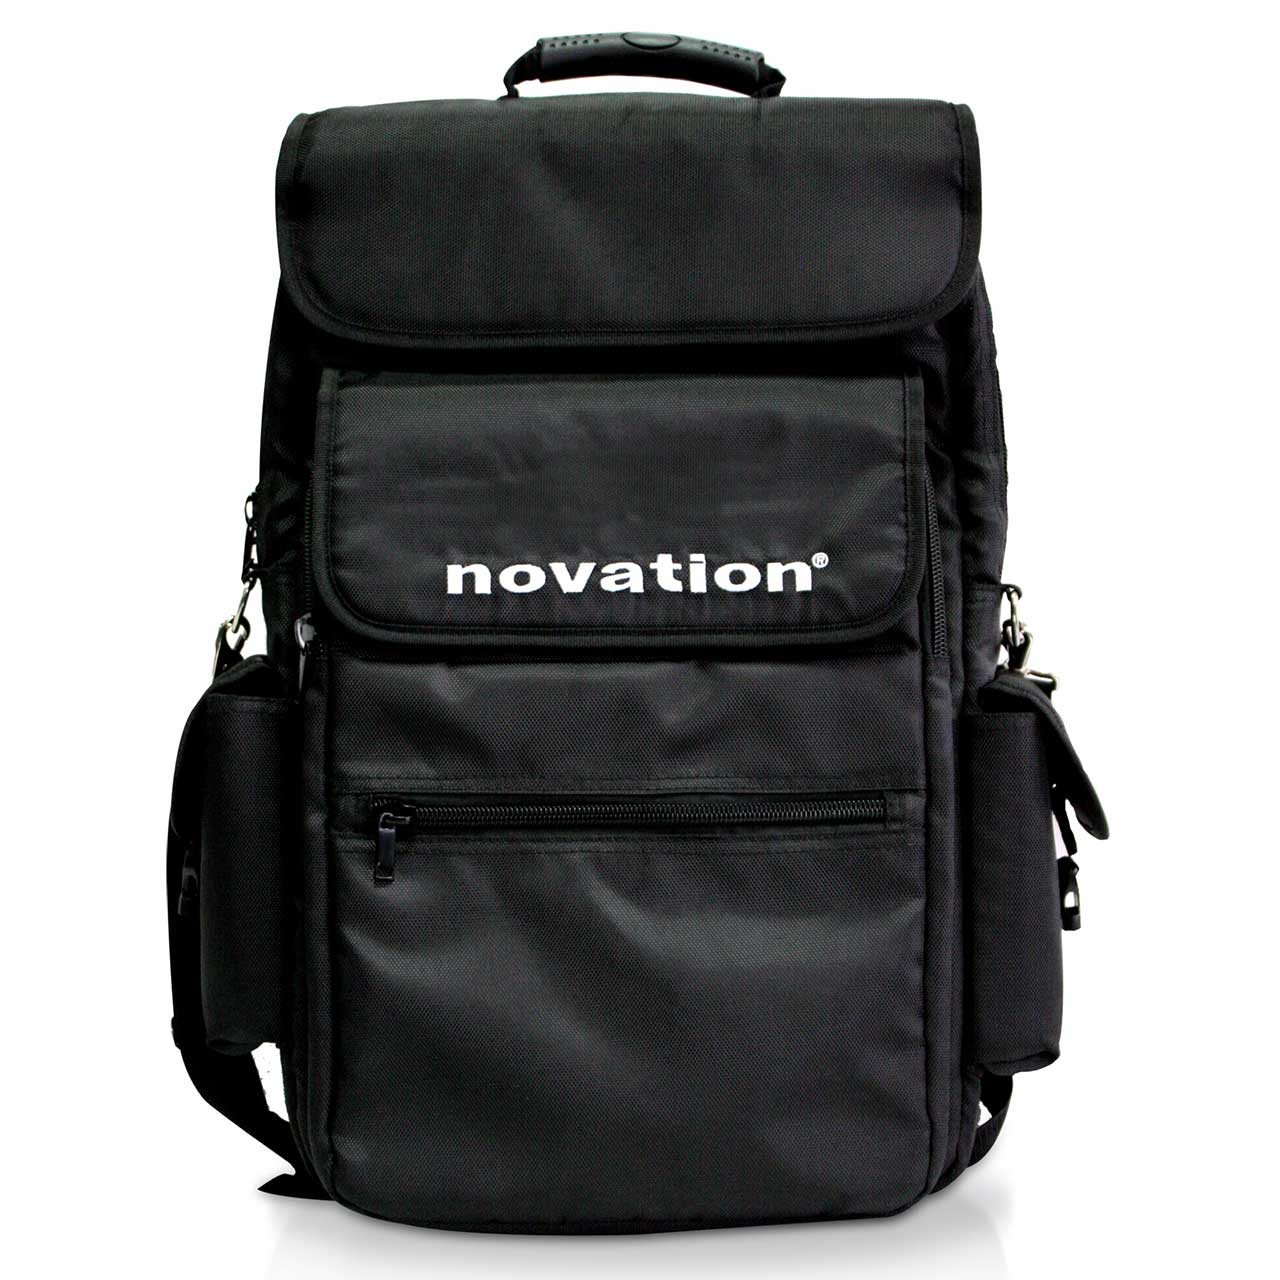 Novation 25 key Keyboard Gig Bag